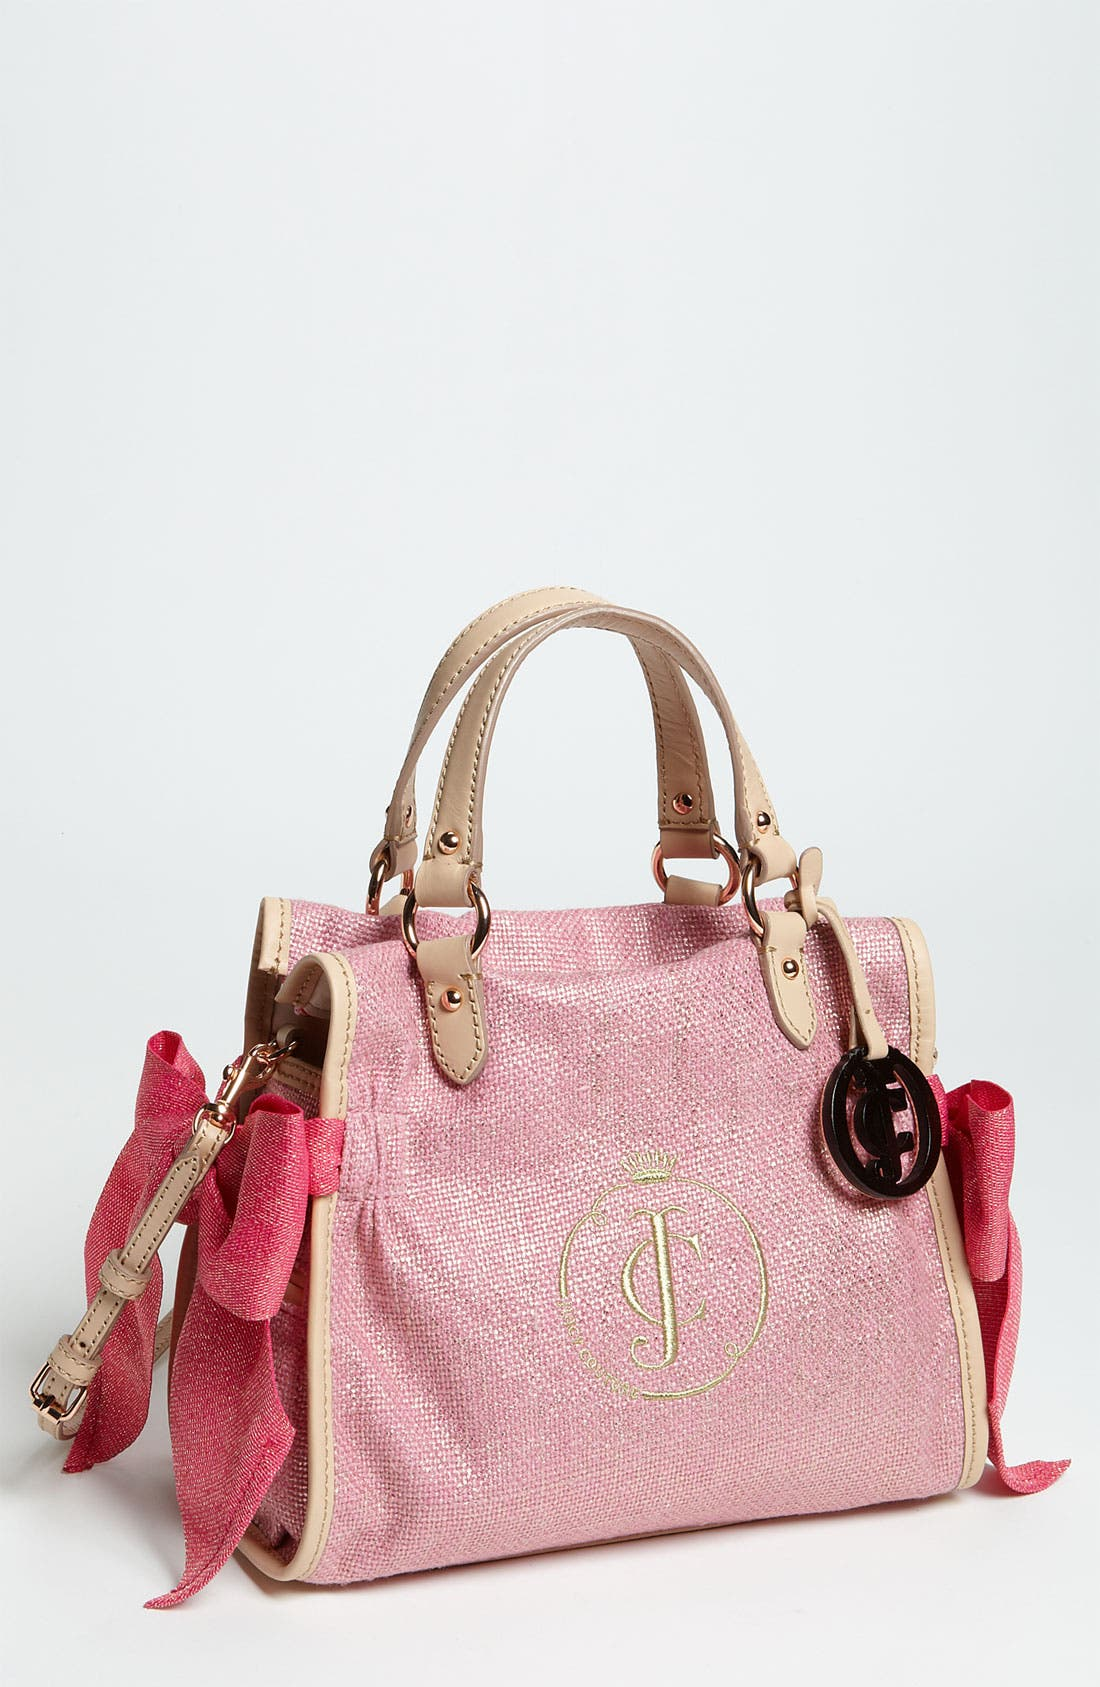 Main Image - Juicy Couture 'Miss Daydreamer' Handbag